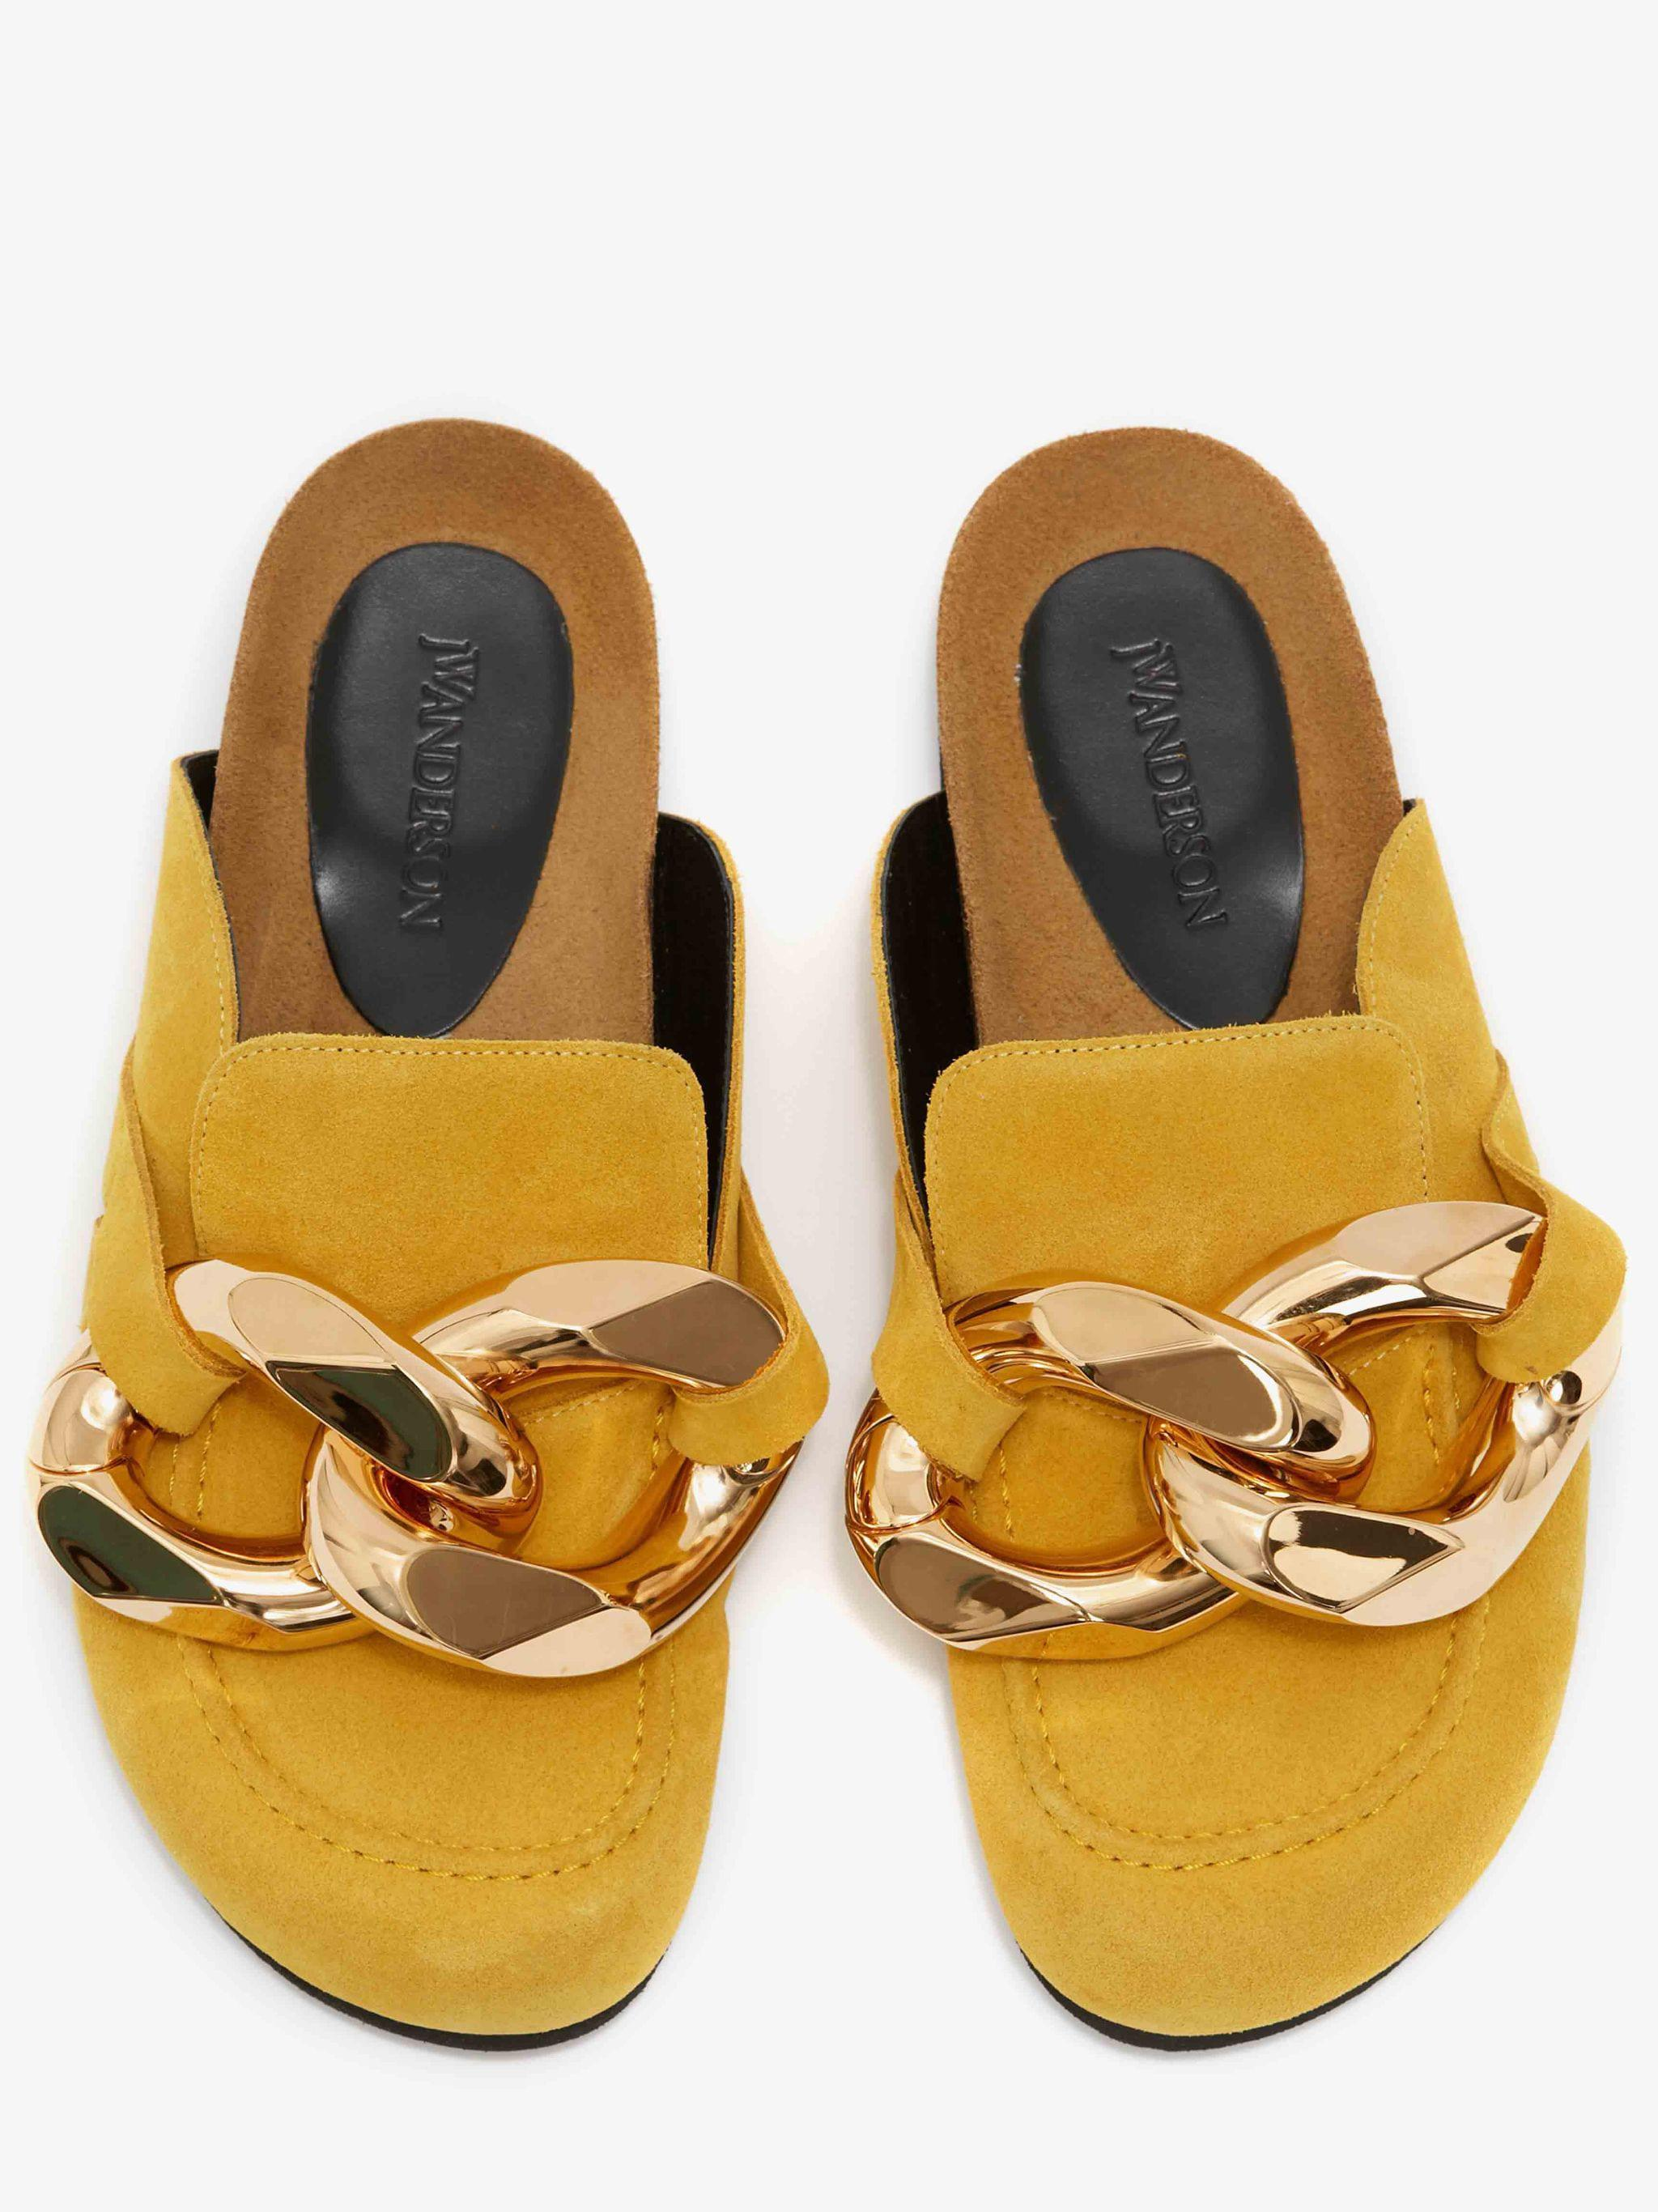 MEN'S CHAIN LOAFER MULES 3